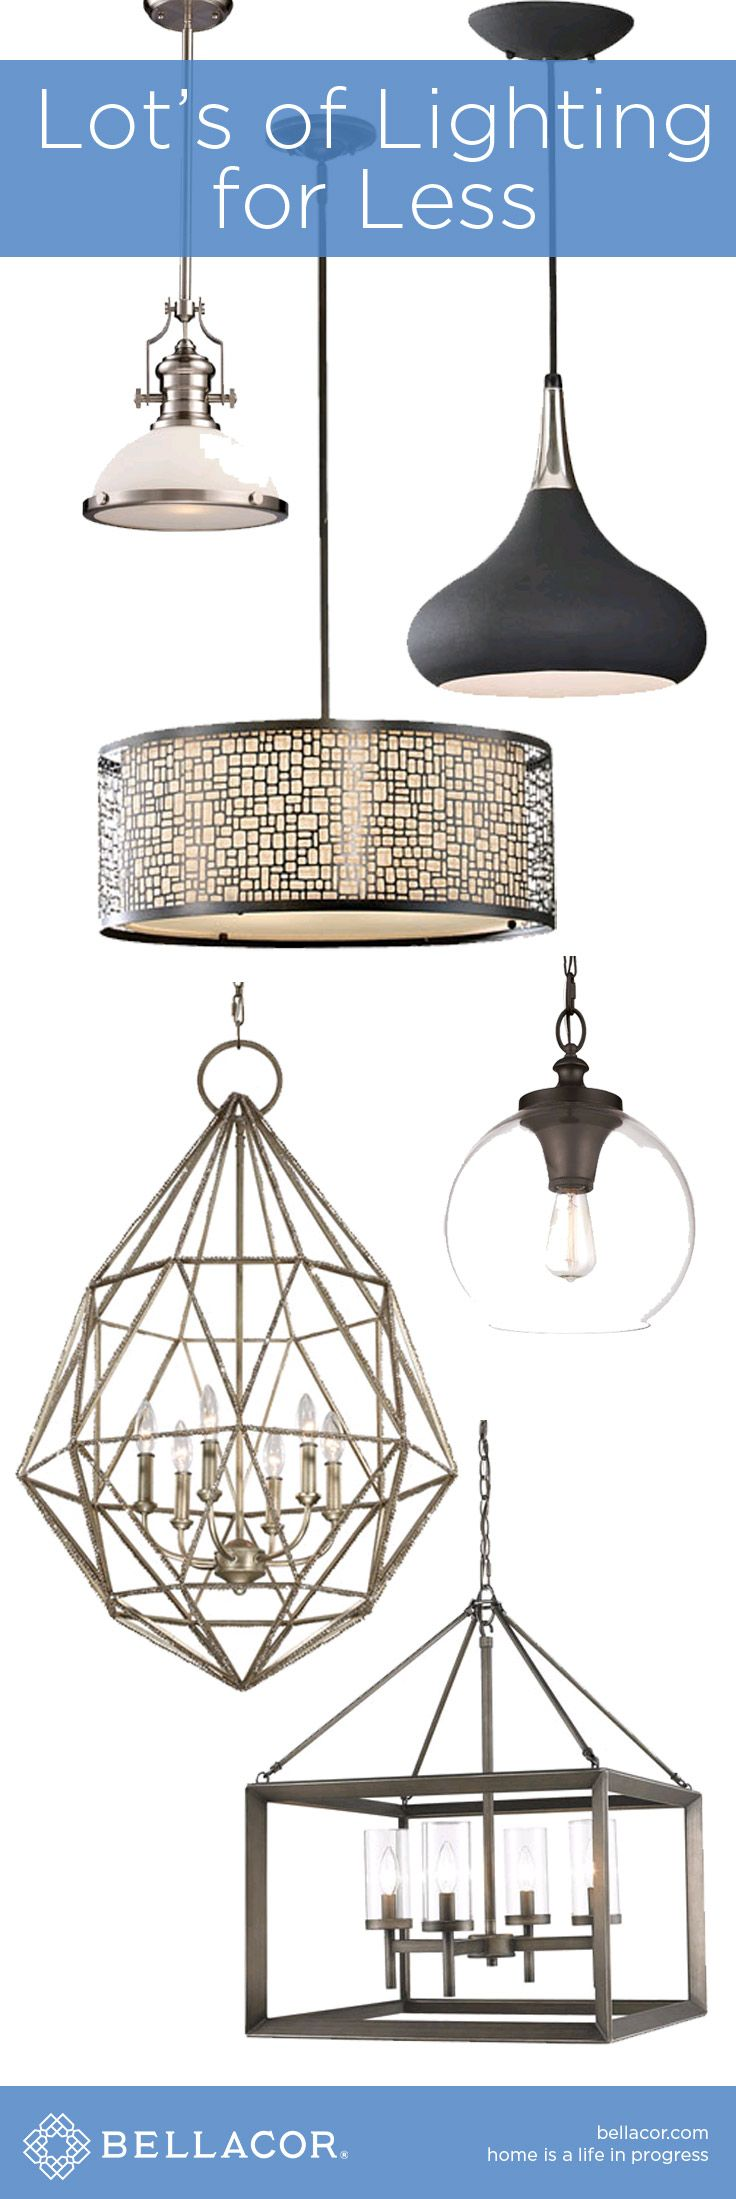 Shop Lot's of Lighting for Less then you would expect at http://www.bellacor.com/